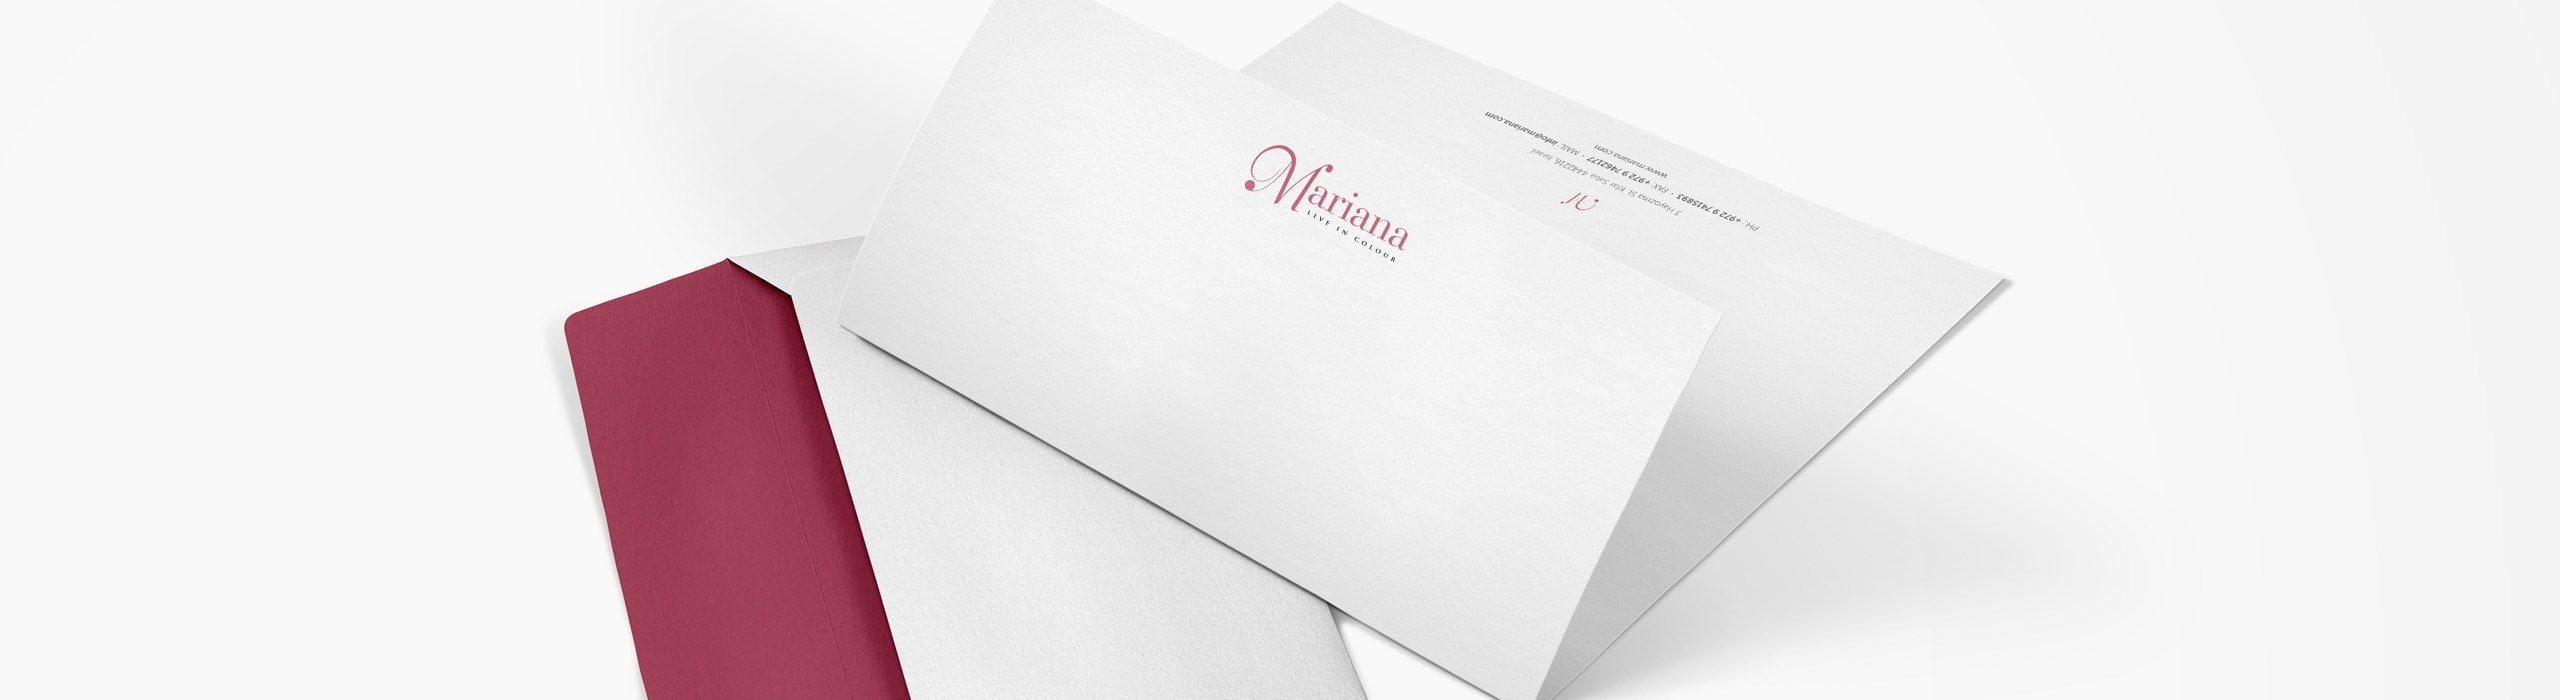 Mariana - natie-mariana-envelope - Natie Branding Agency